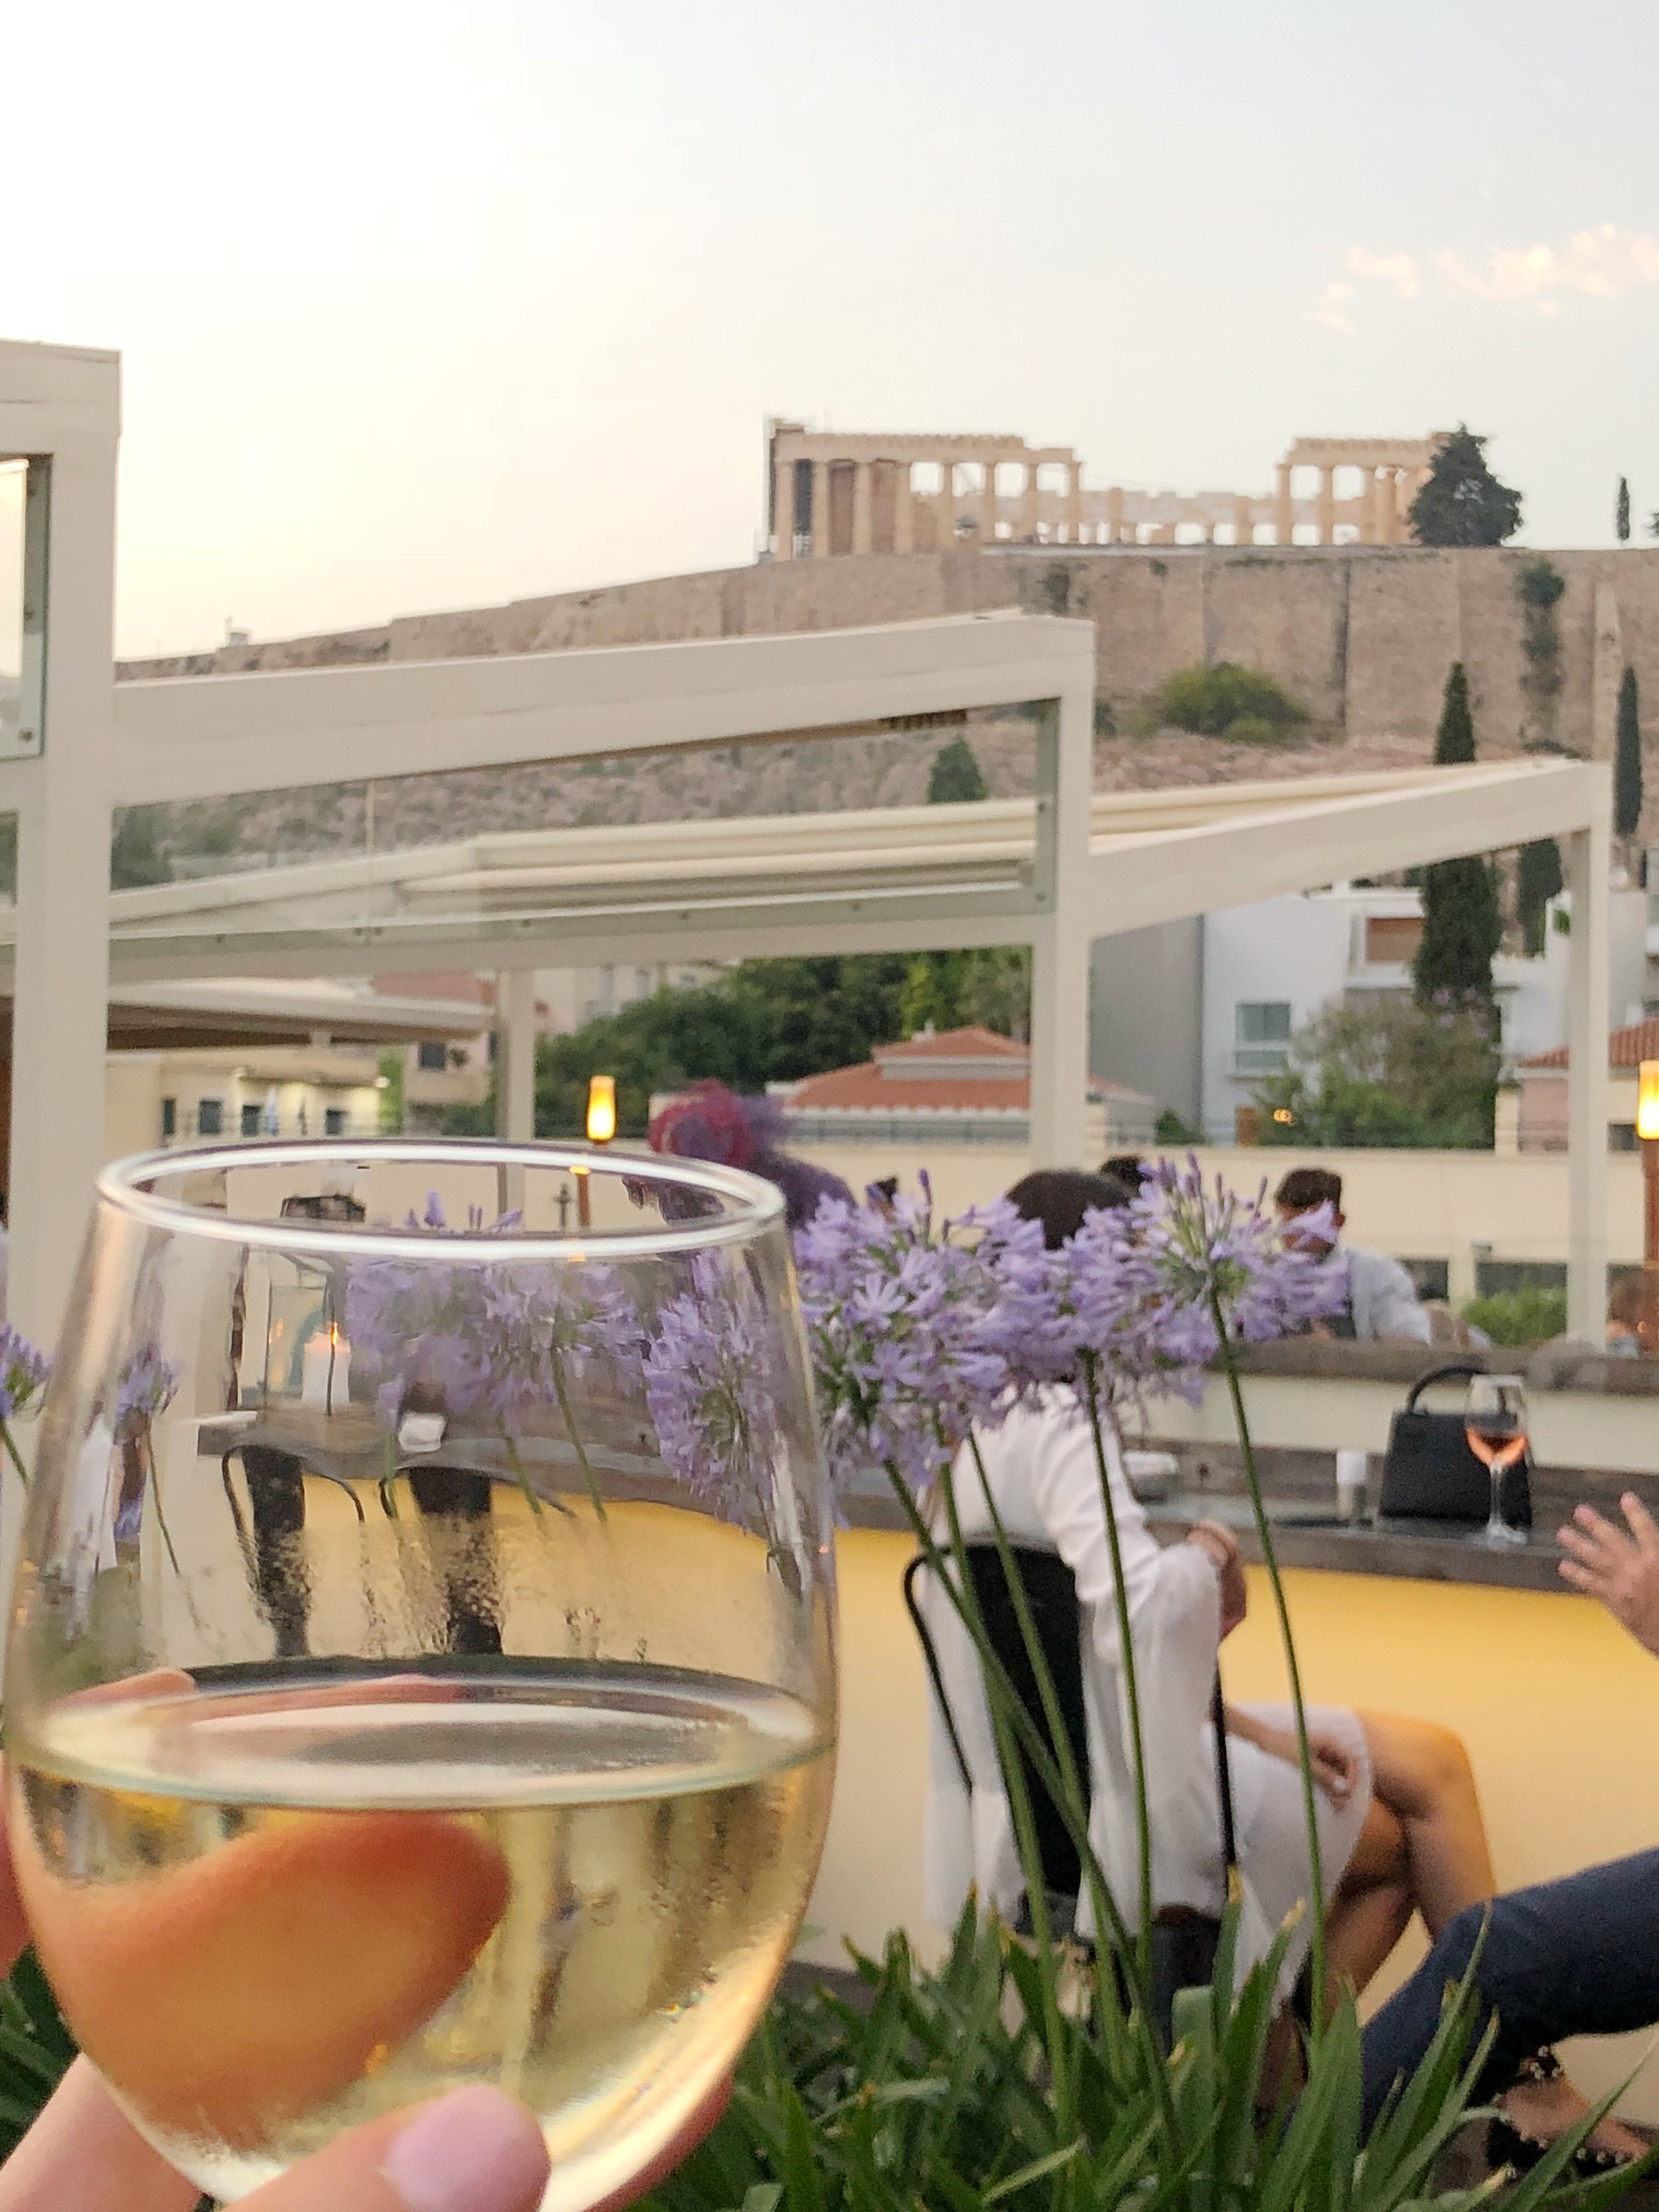 We arrived in Athens just in time to catch the sunset over the Acropolis and have a glass of wine on the rooftop of the Herodion Hotel.